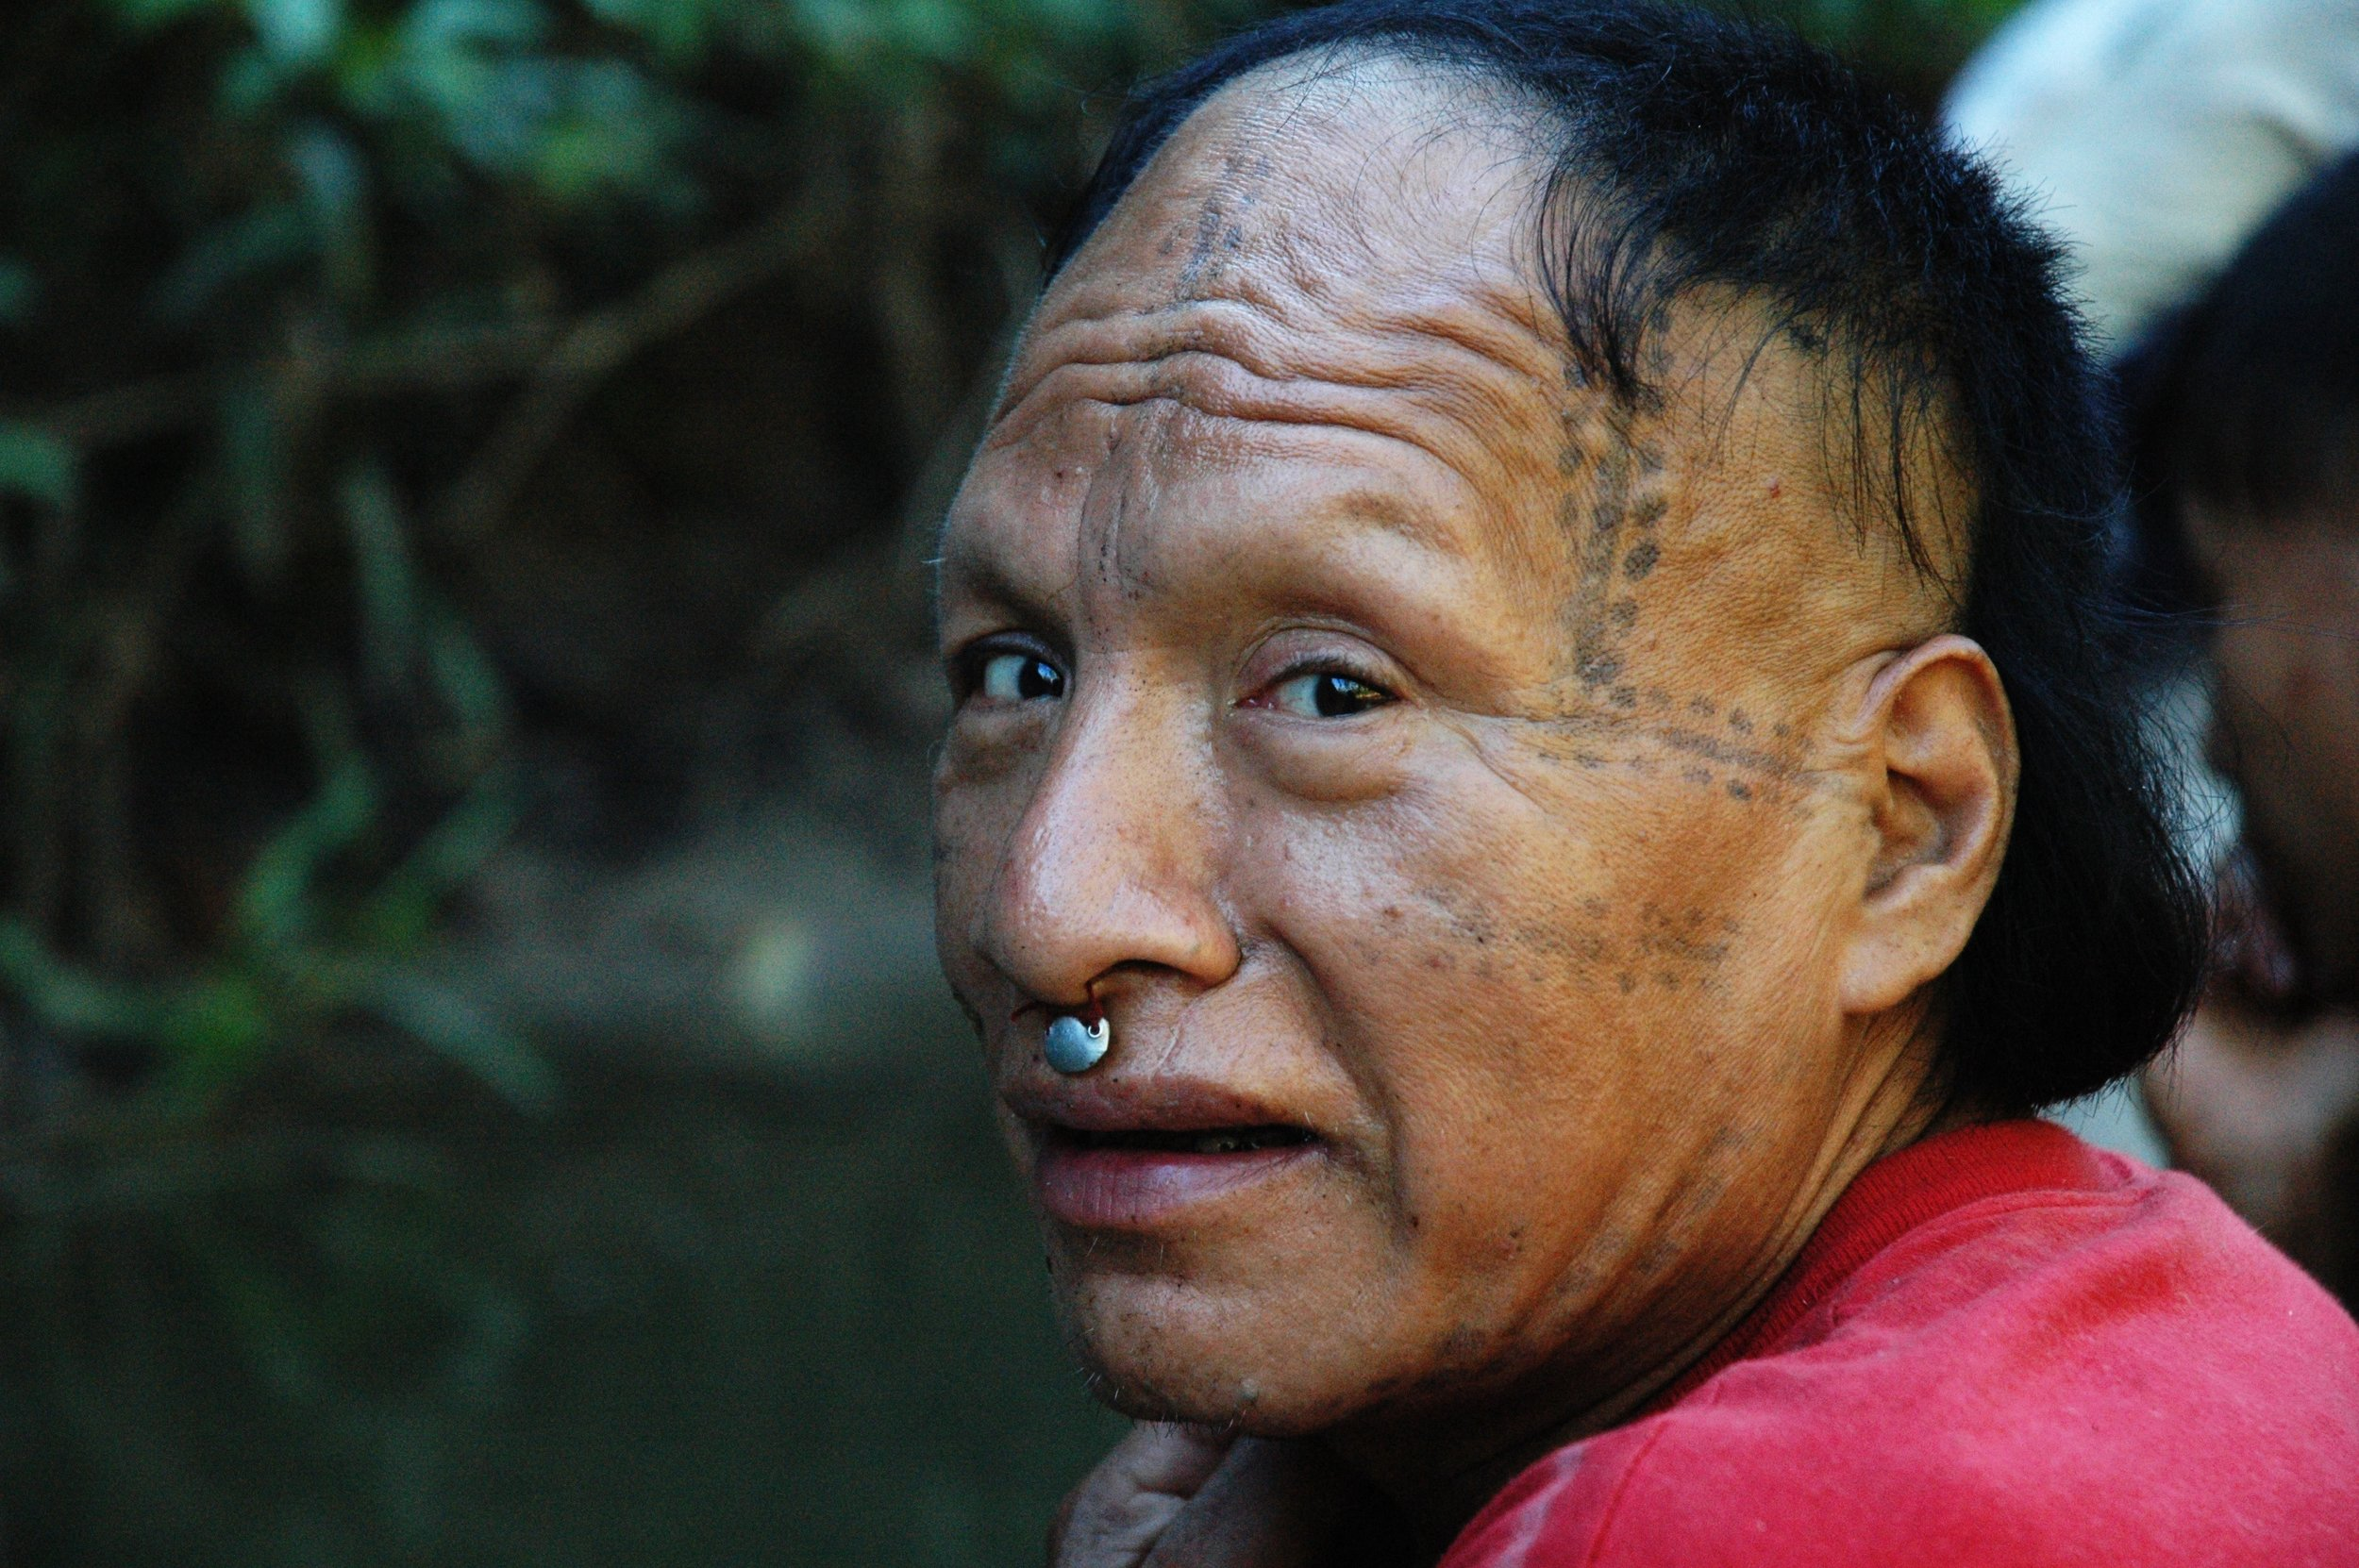 'Tomas' or 'Epa', a 'Mastanahua' man on the River Curanja, Peru. 'Epa' made contact with Christian missionaries from the US in the early 2000s. Credit: David Hill/Survival